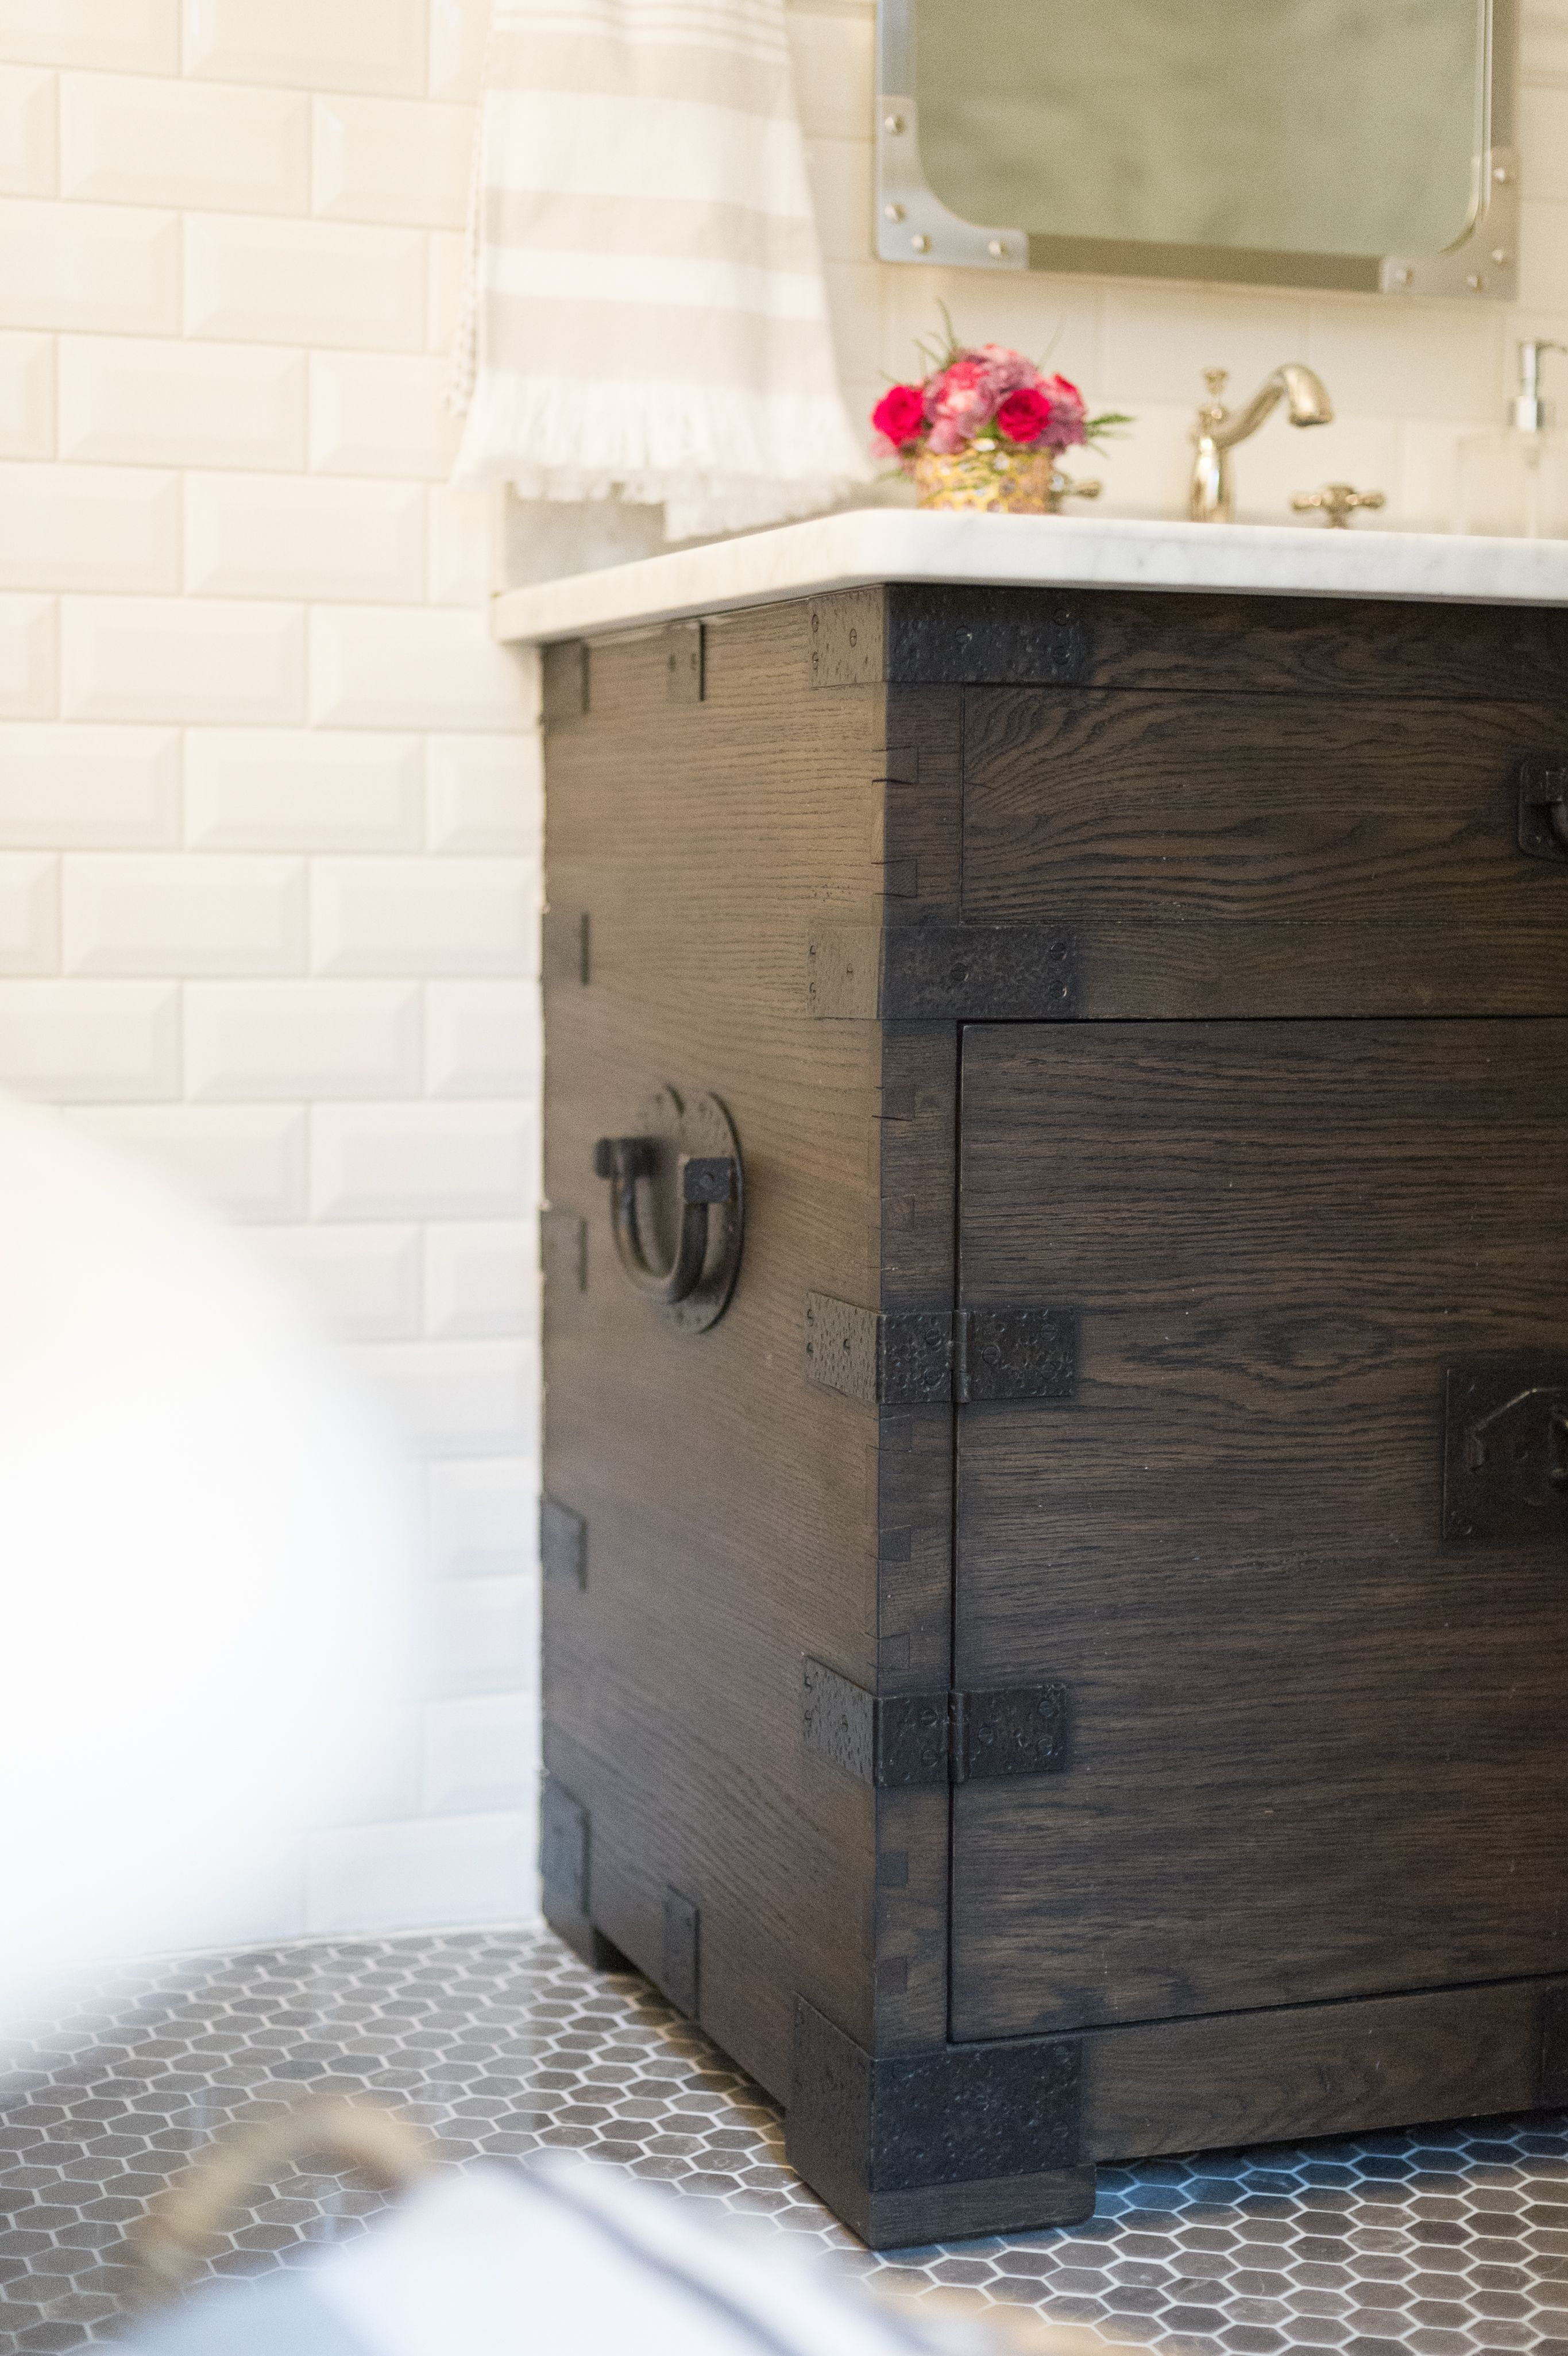 Modern French Country Ensuite Renovation Reveal | Modern ...